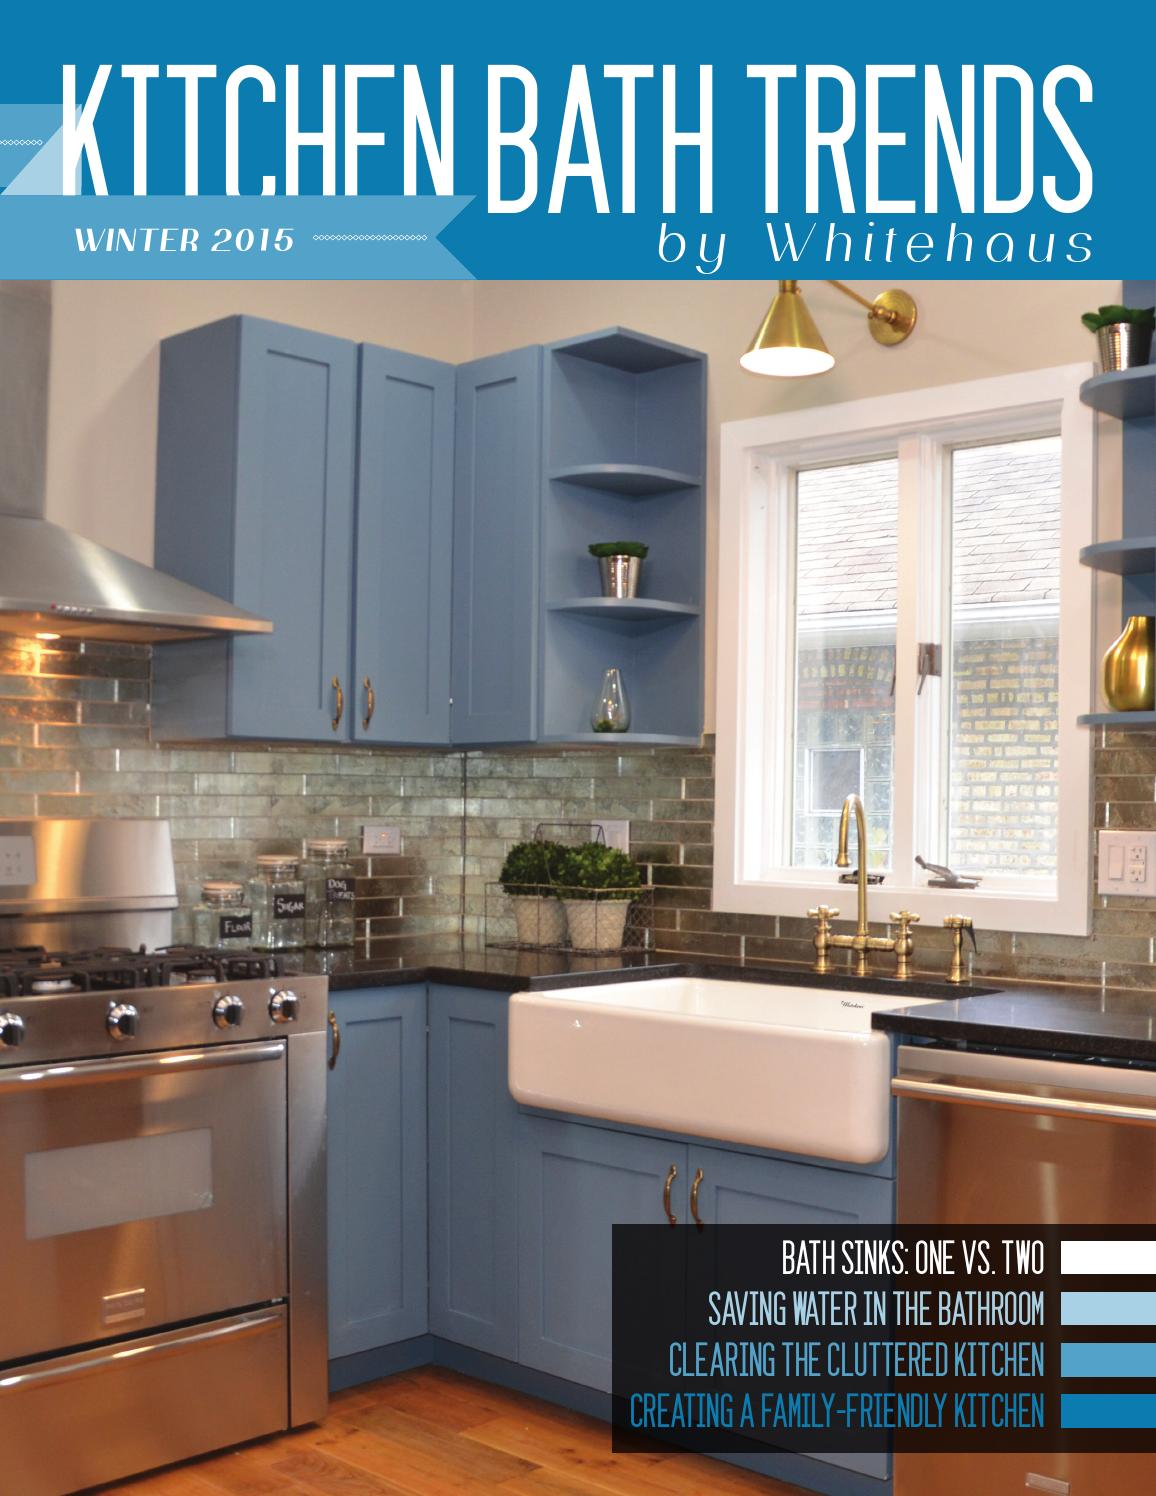 Kitchen bath trends magazine winter 2015 by kitchen bath for Trends kitchens and bathrooms